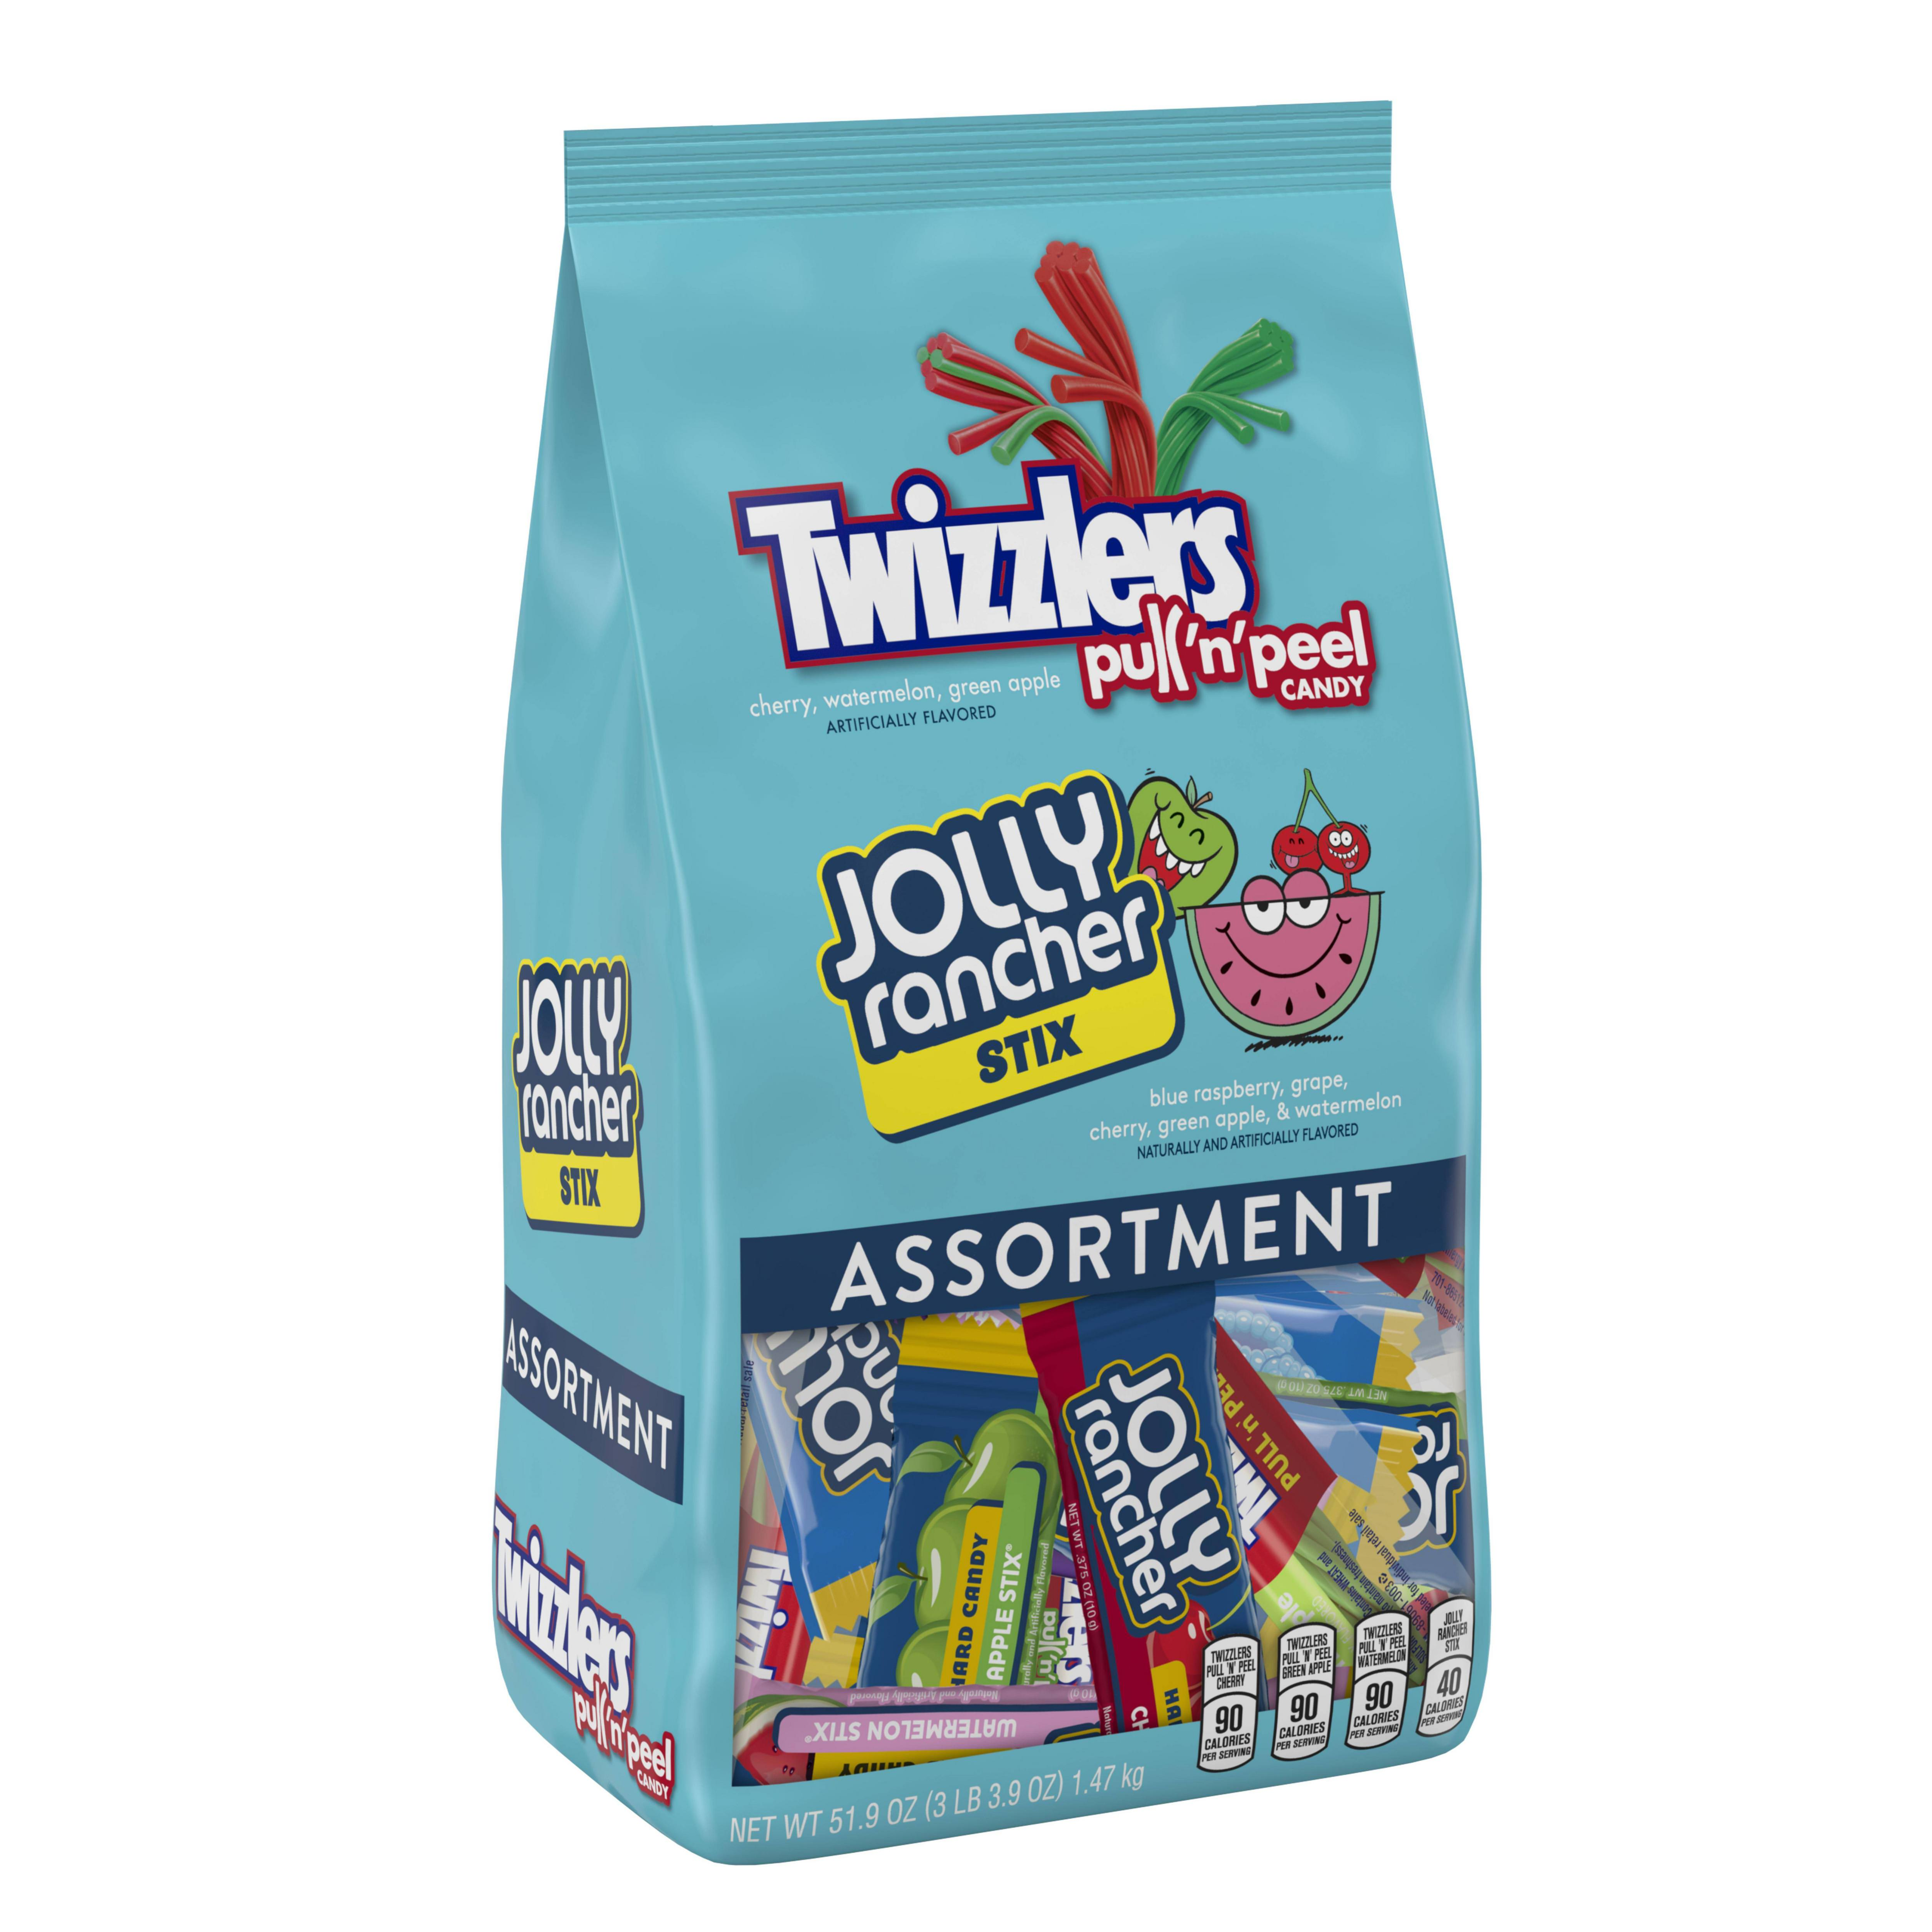 Hershey's, Jolly Rancher and Twizzlers Candy Assortment, 51.9 Oz